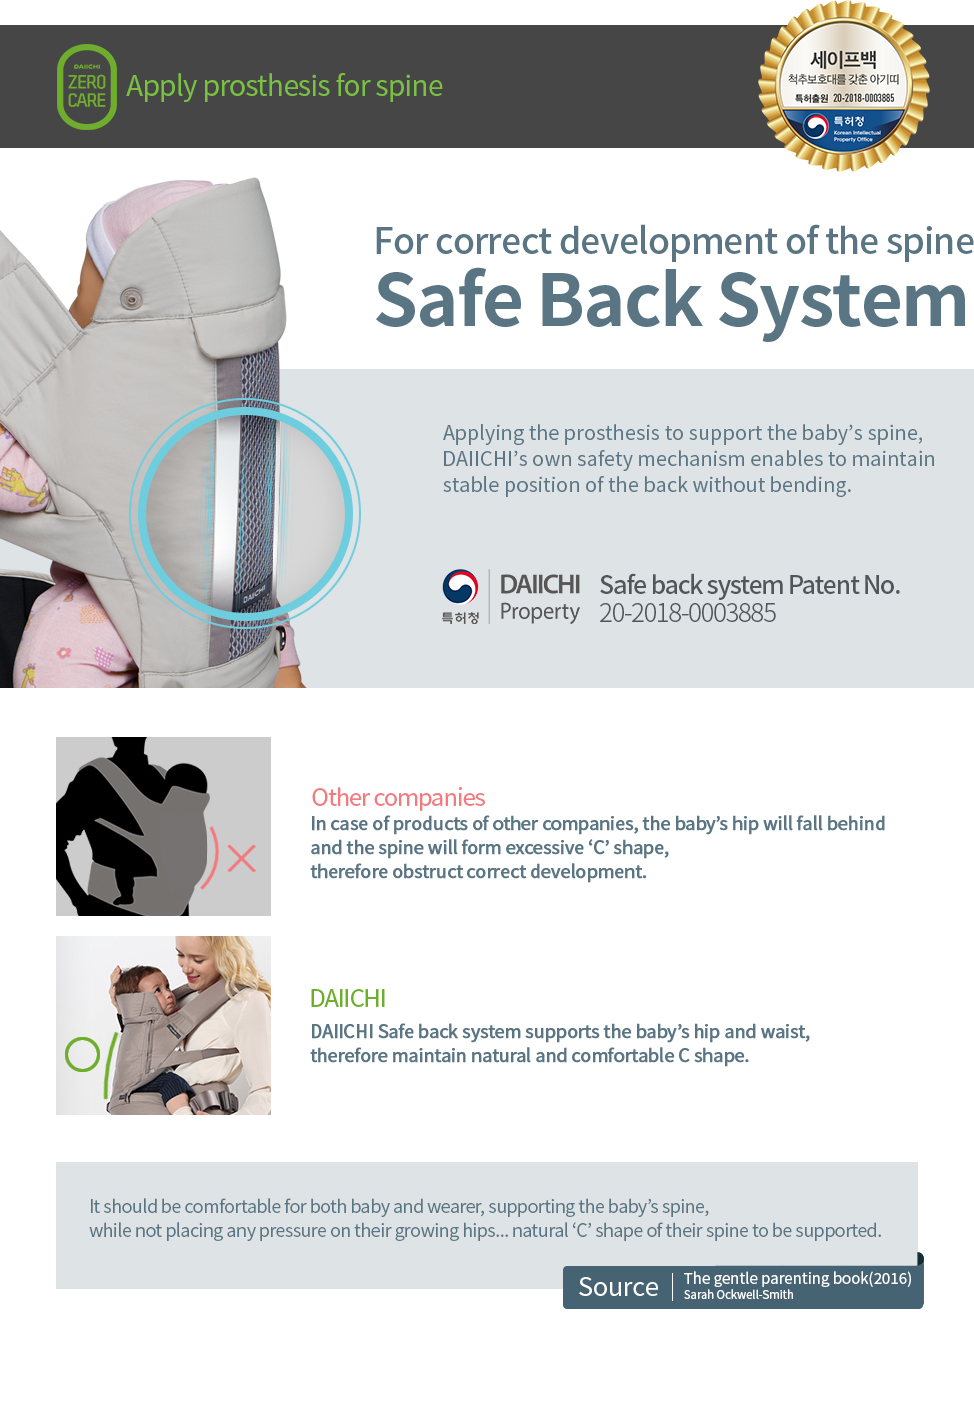 For correct development of the spine, Safe back system. Applying the prosthesis to support the baby's spine, DAIICHI's own safety mechanism enables to maintain stable position of the back without bending. DAIICHI Safe back system supports the baby's hip and waist, therefore maintain natural and comfortable C shape.